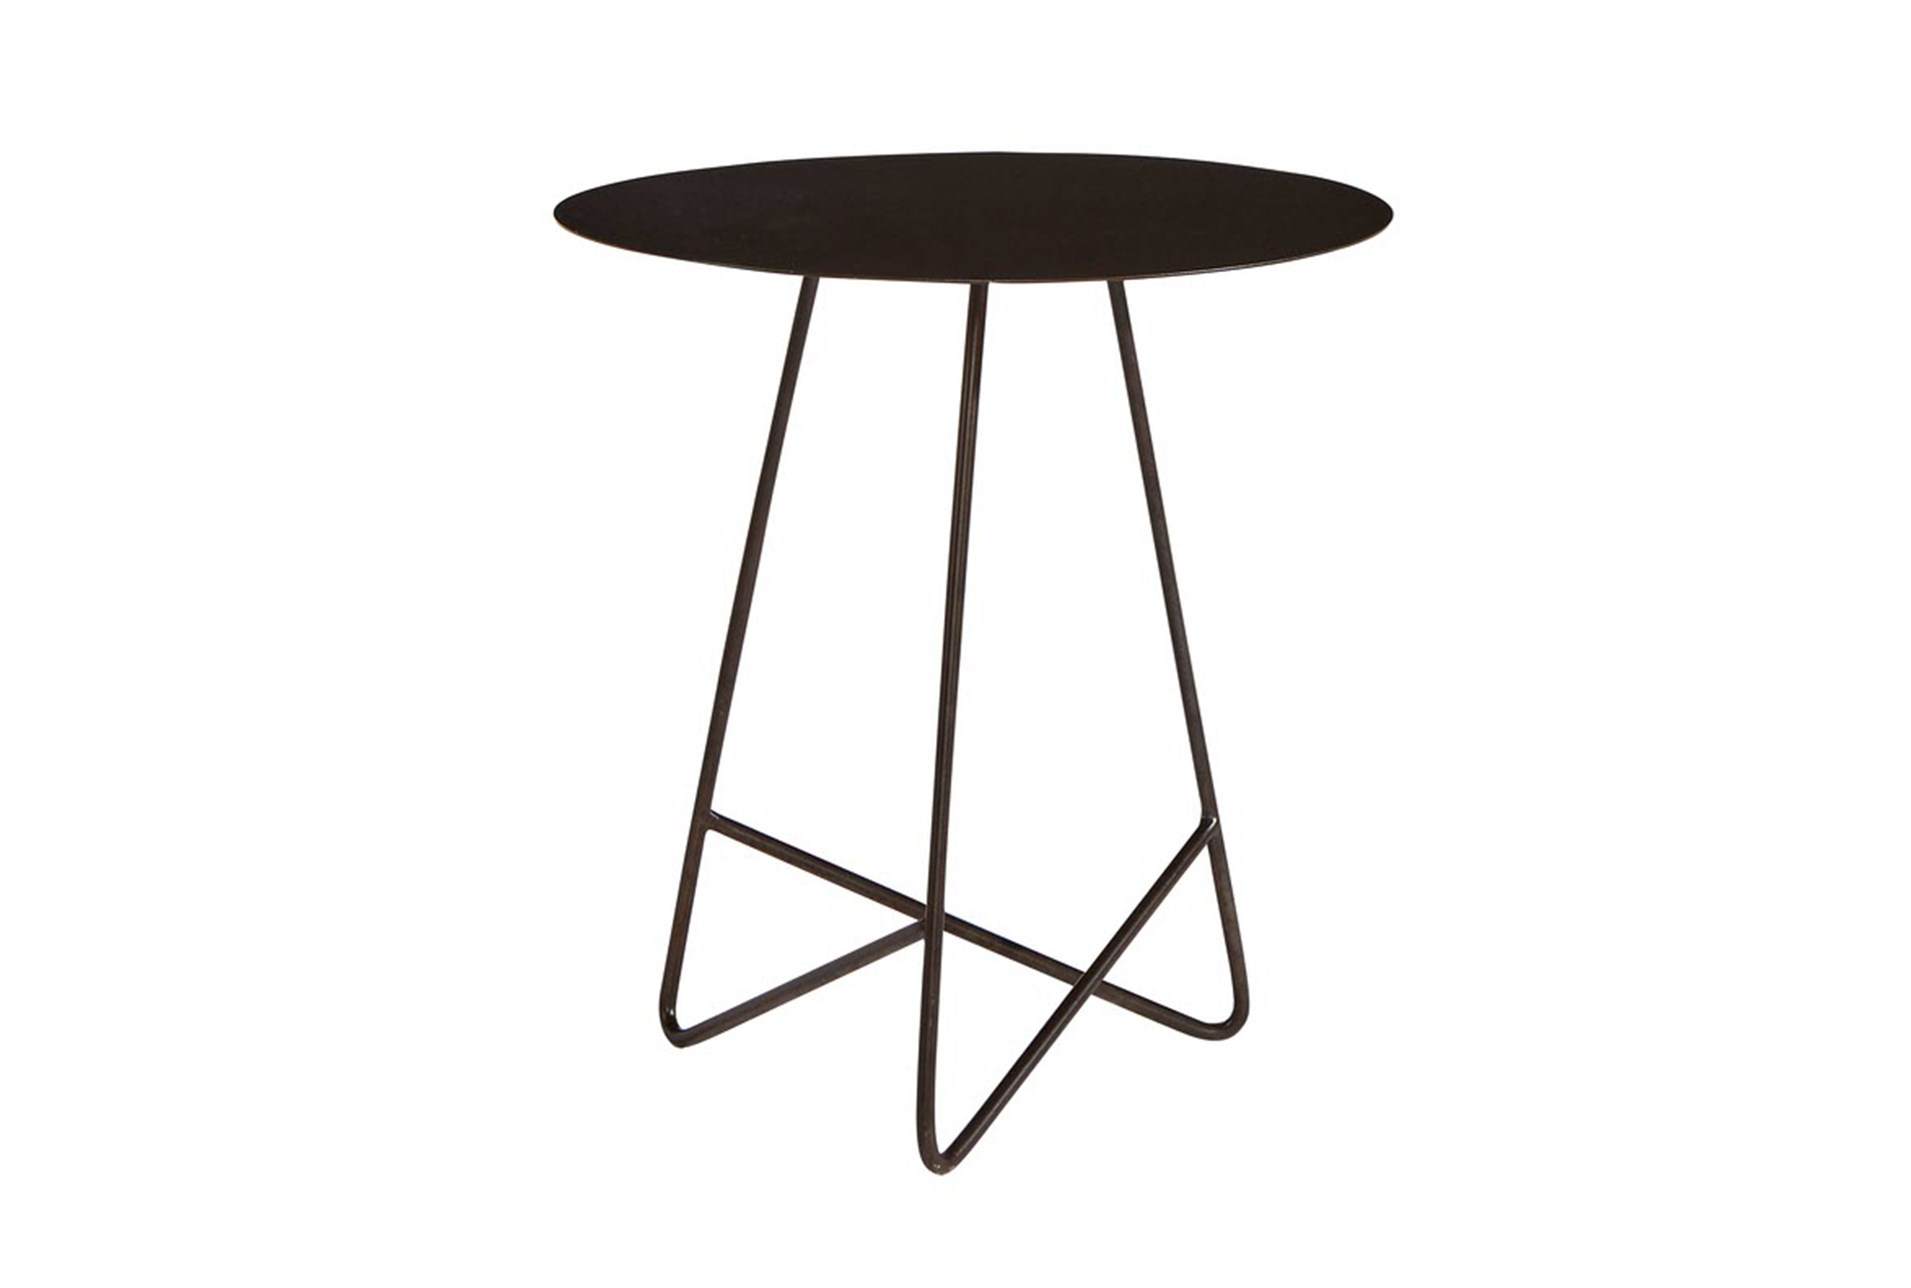 magnolia home traverse carbon round end table joanna gaines black metal qty has been successfully your cart brushed nickel floor lamps large nightstands pie crust iron patio side